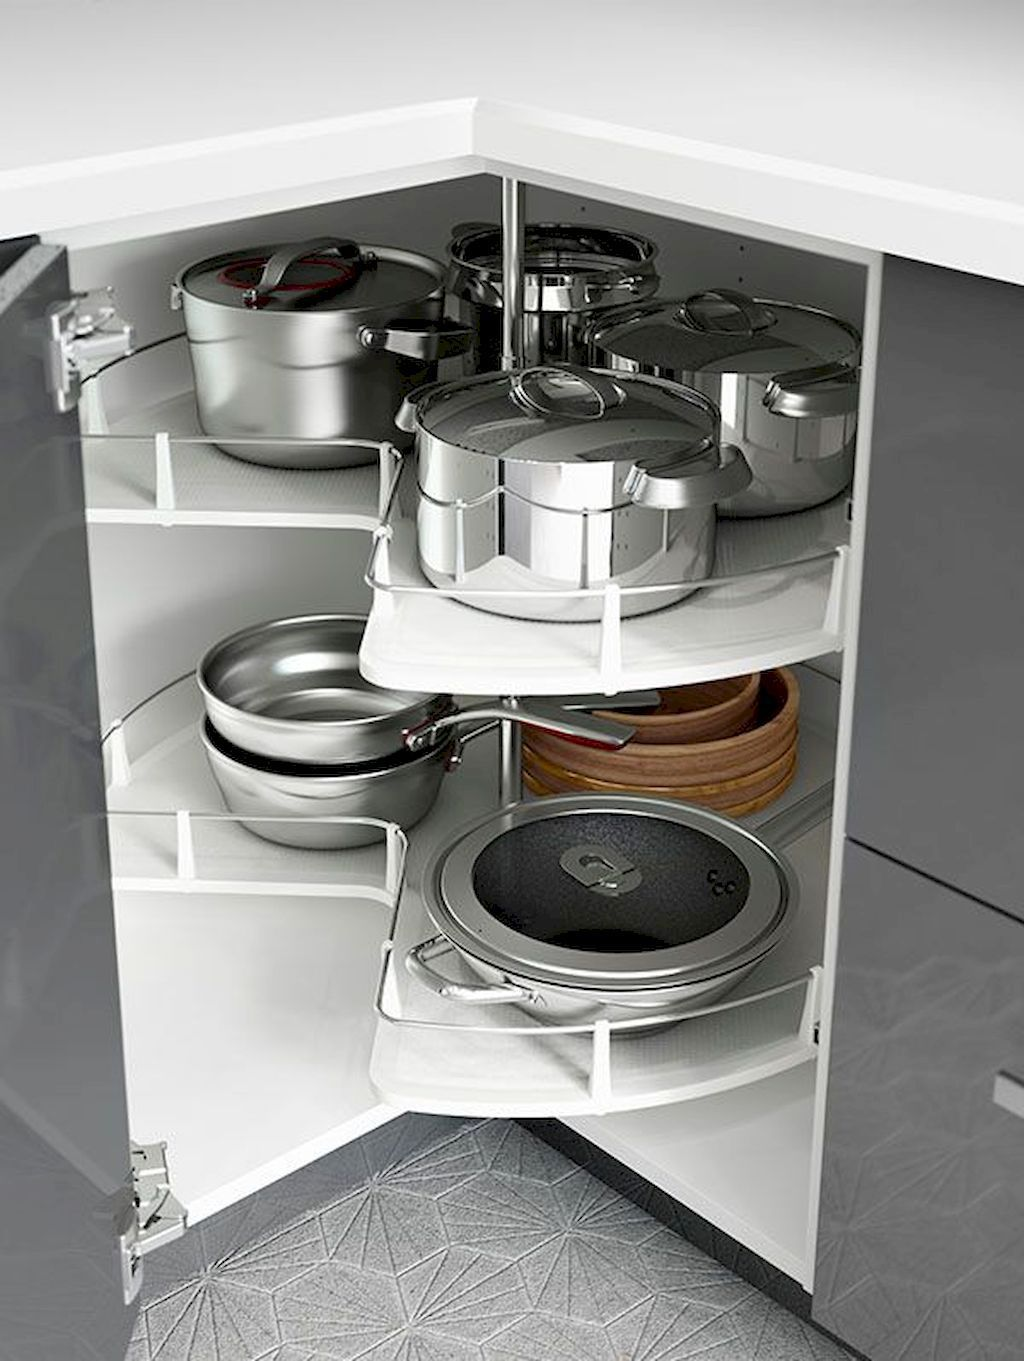 Storage Ideas For Small Kitchens That Look Compact And Efficient 16